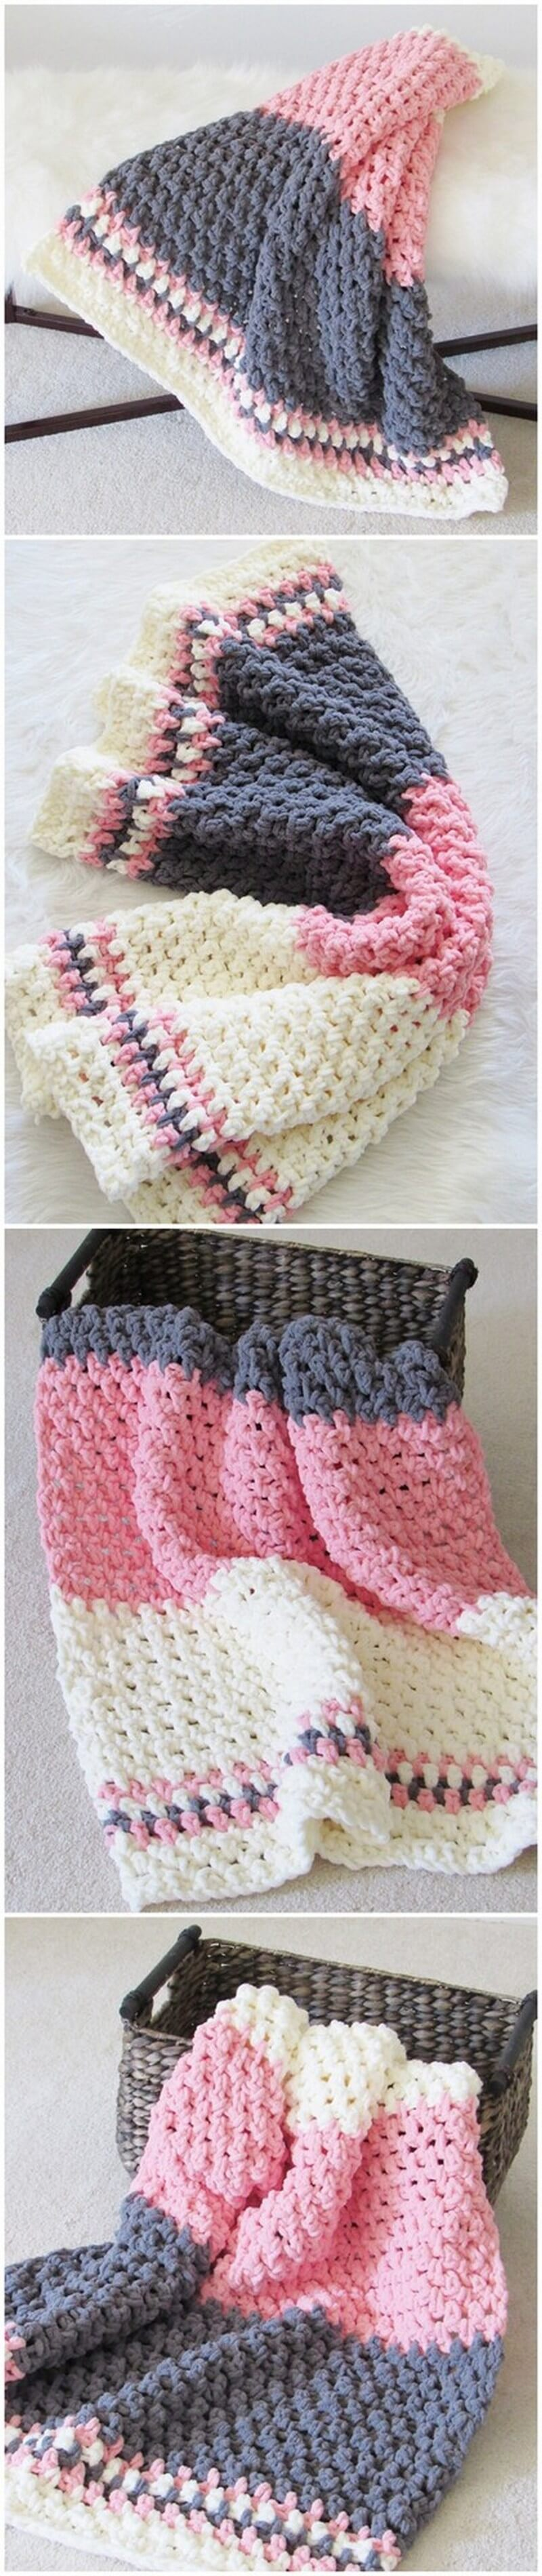 Easy Crochet Blanket Pattern (17)